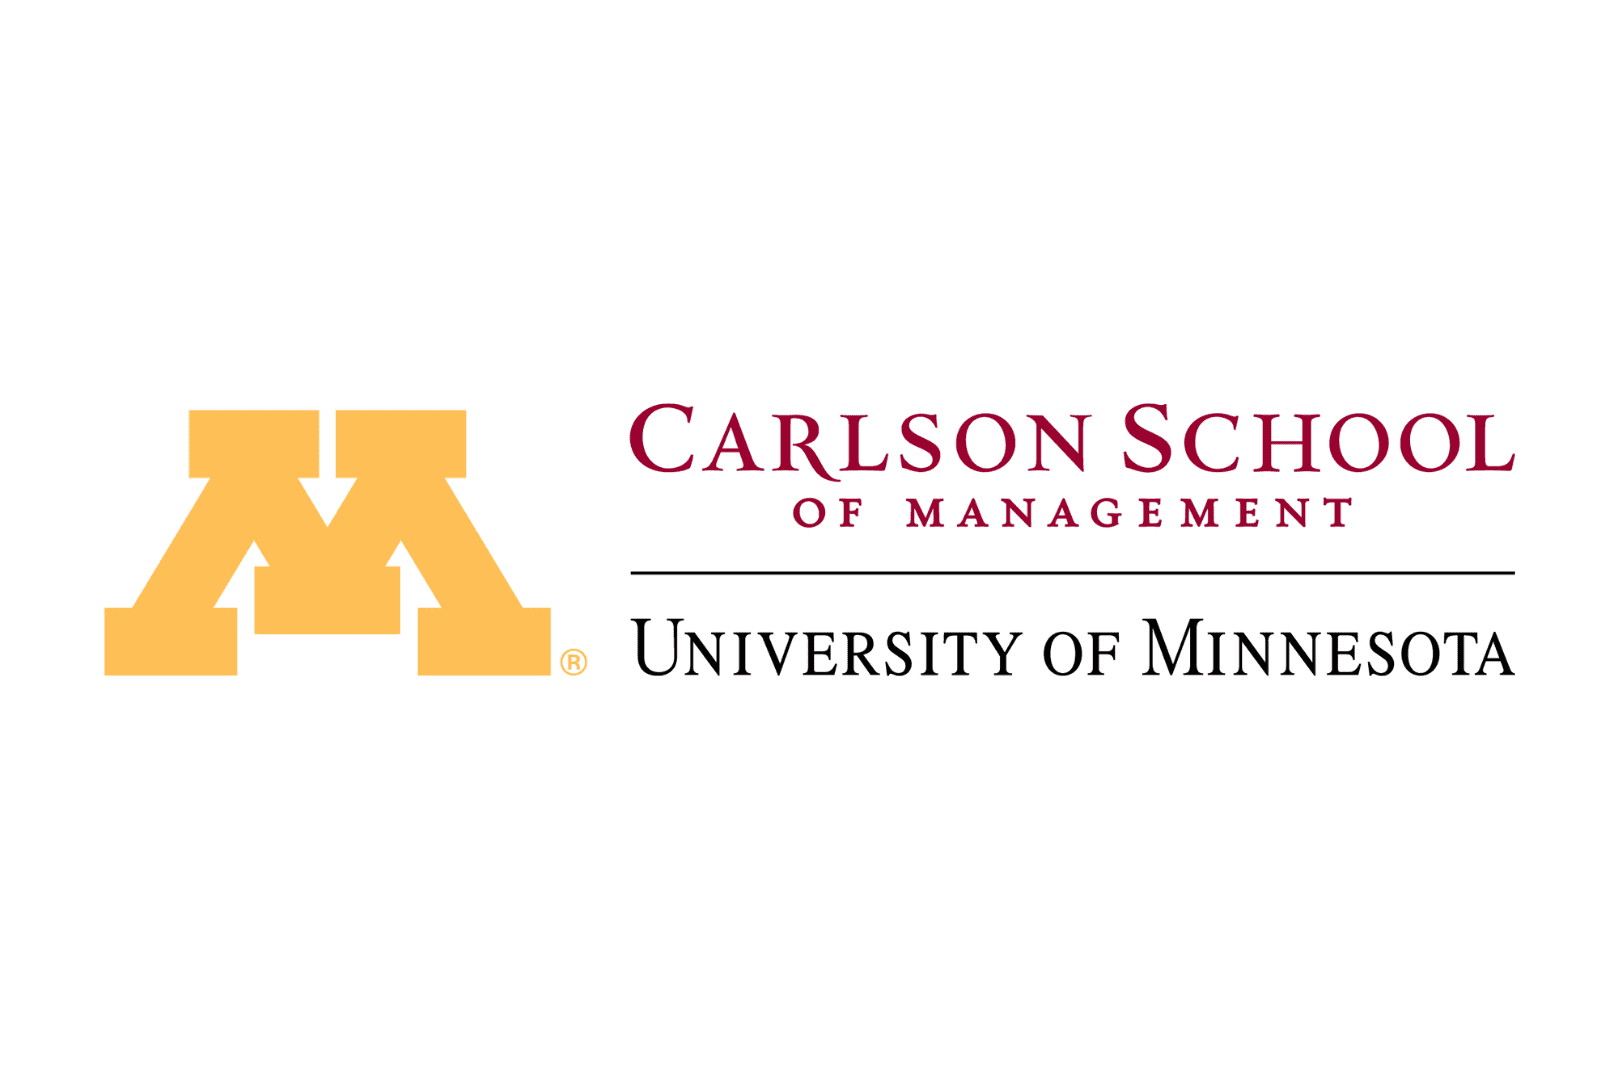 Carlson School of Management Partners Logo for Partners Section About Us (1)